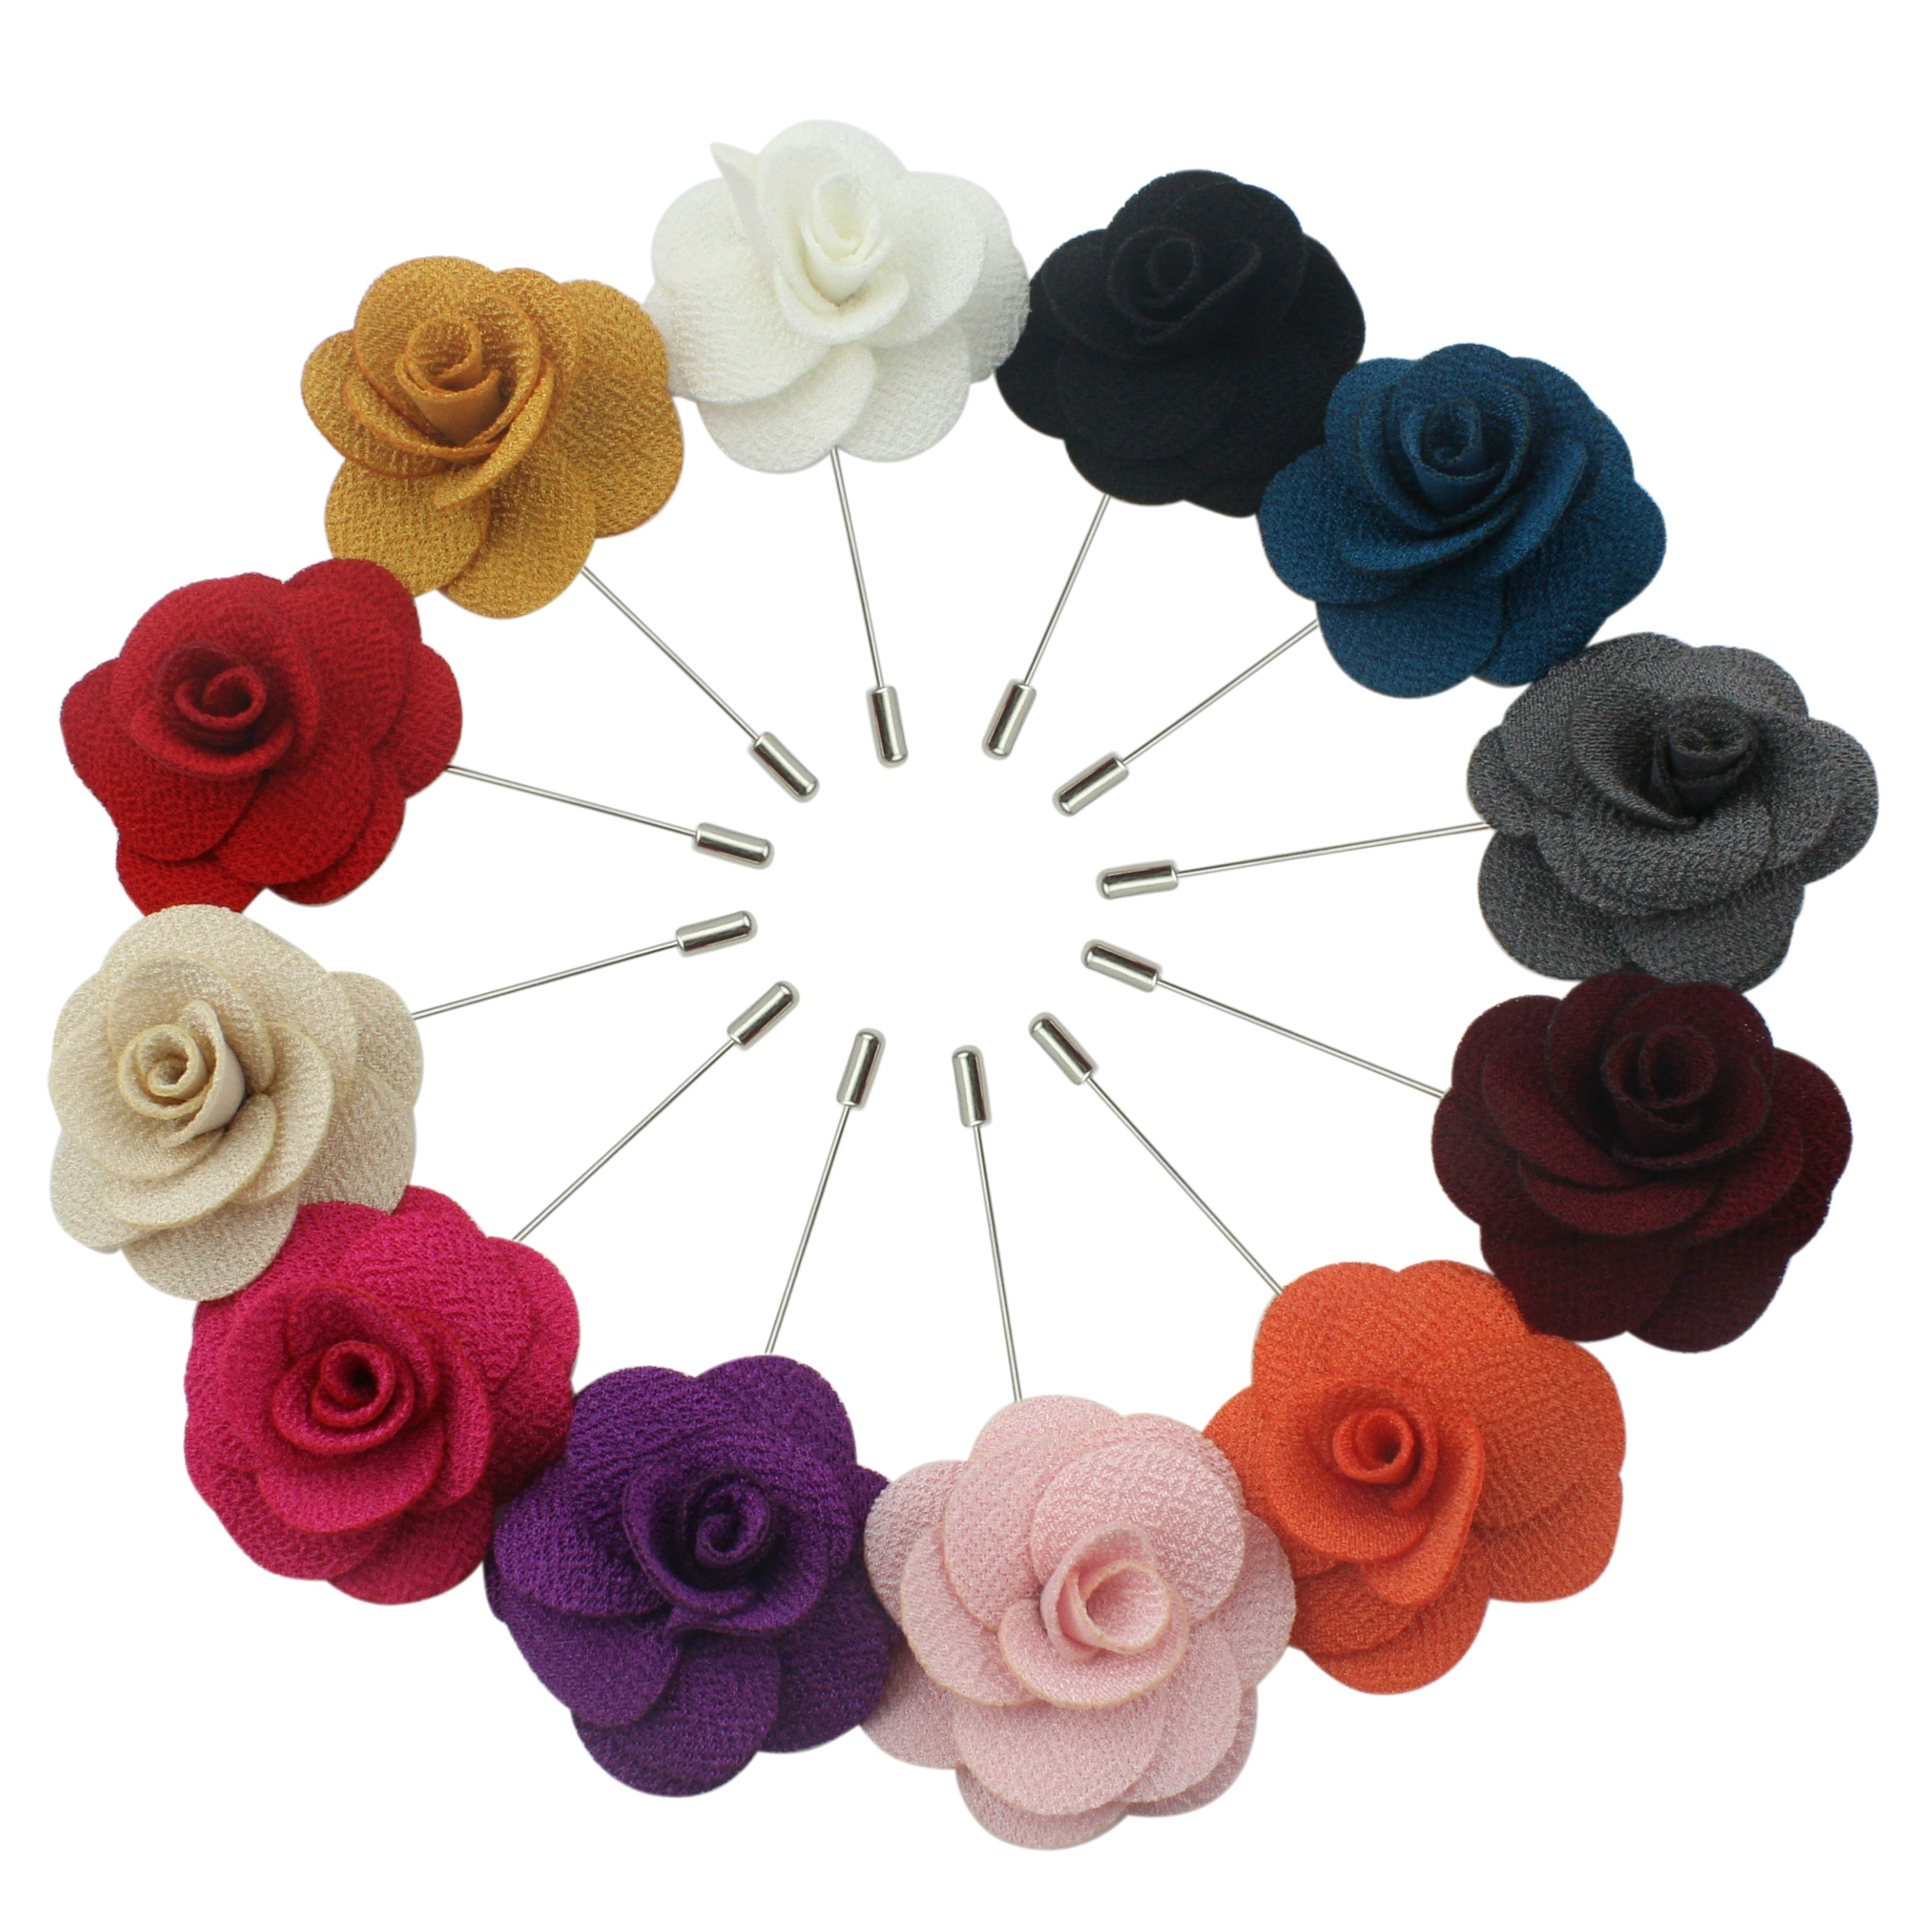 JLIKA Lapel Flower Pin Rose for Wedding Boutonniere Stick (Set of 12 Assorted Color PINS)